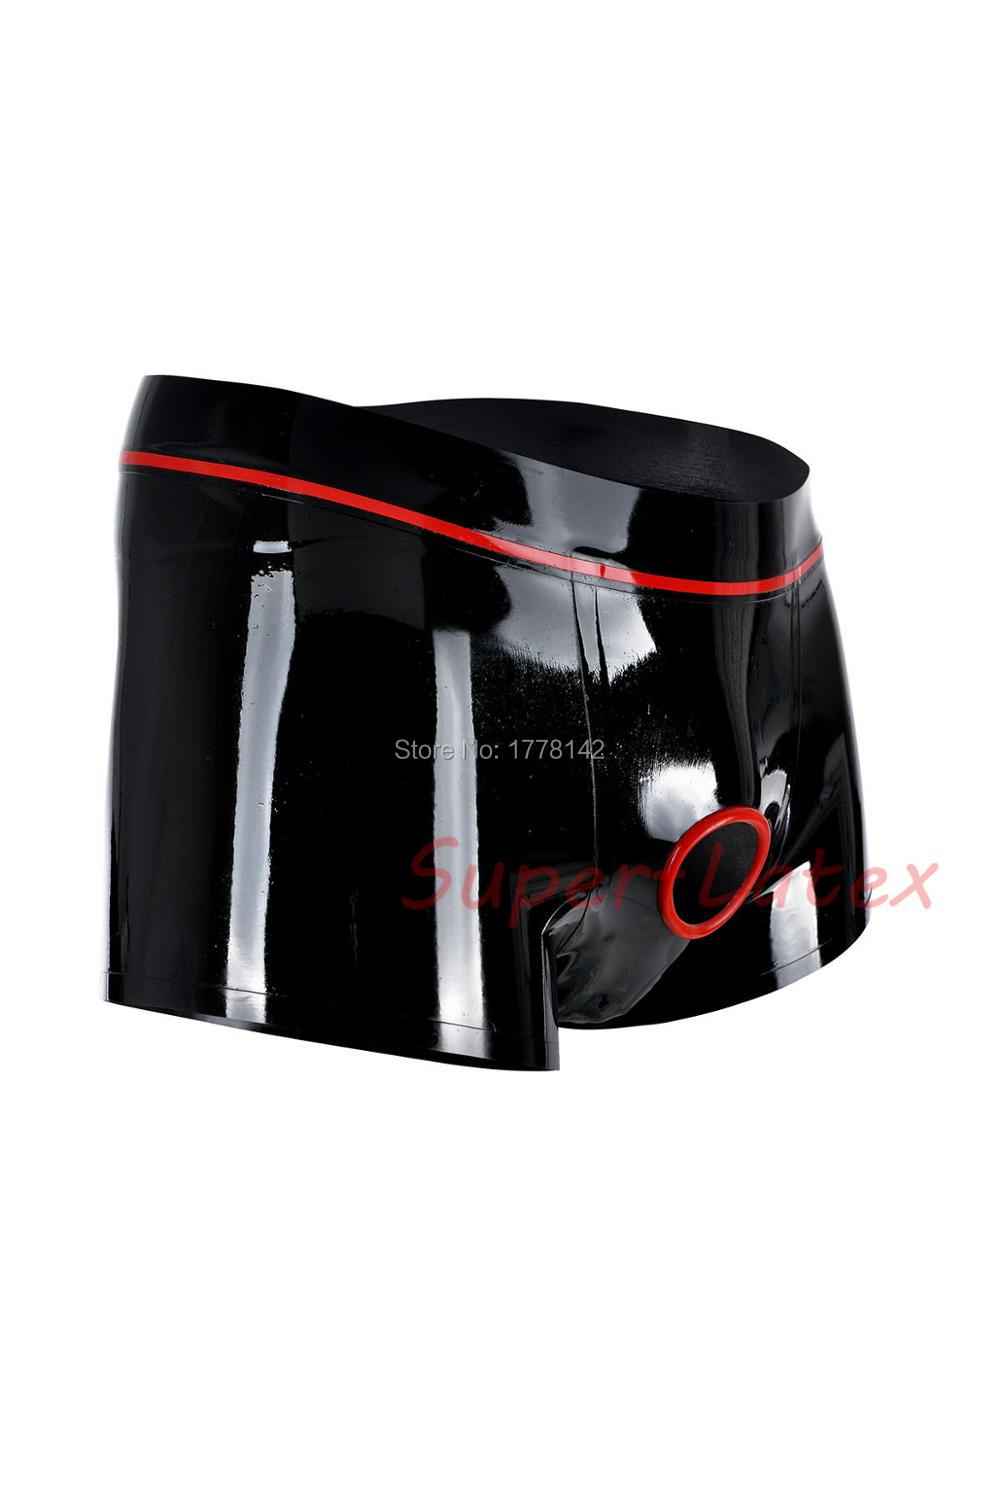 Latex Boxer Men Underwear With Trims Crotch Holes Customized